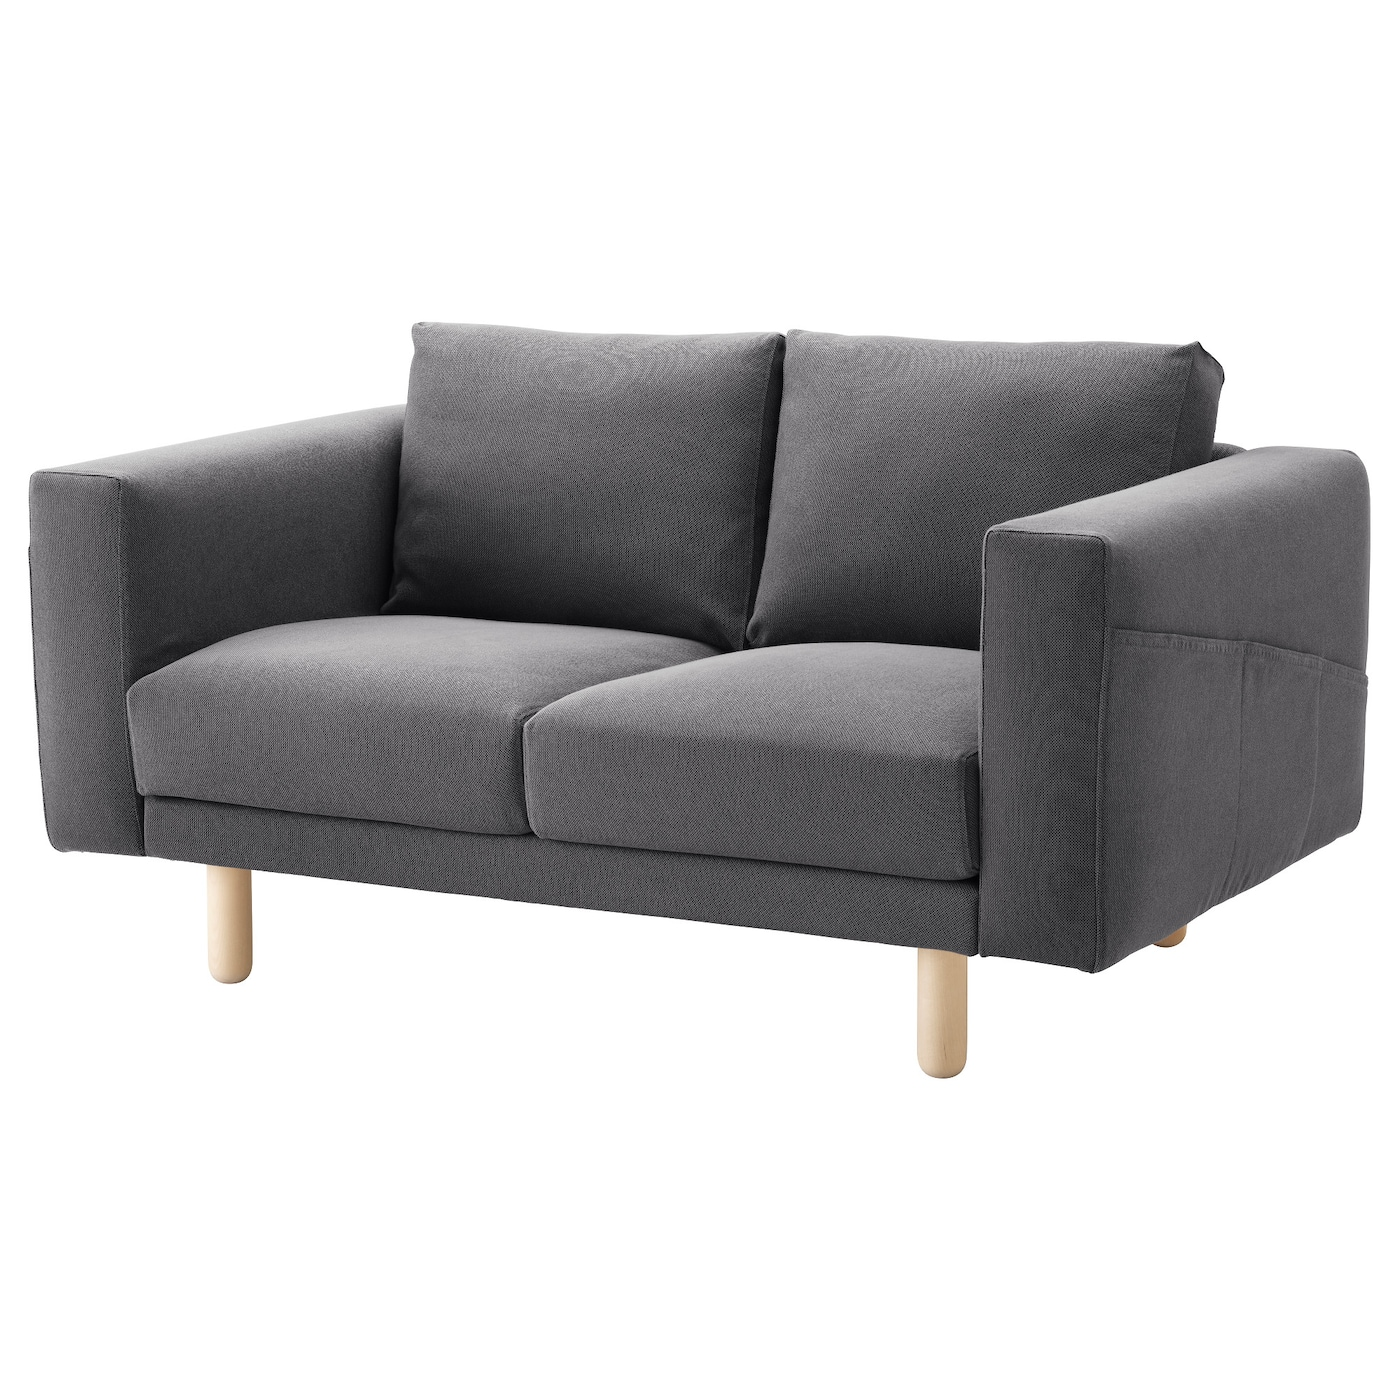 norsborg two seat sofa finnsta dark grey birch ikea. Black Bedroom Furniture Sets. Home Design Ideas